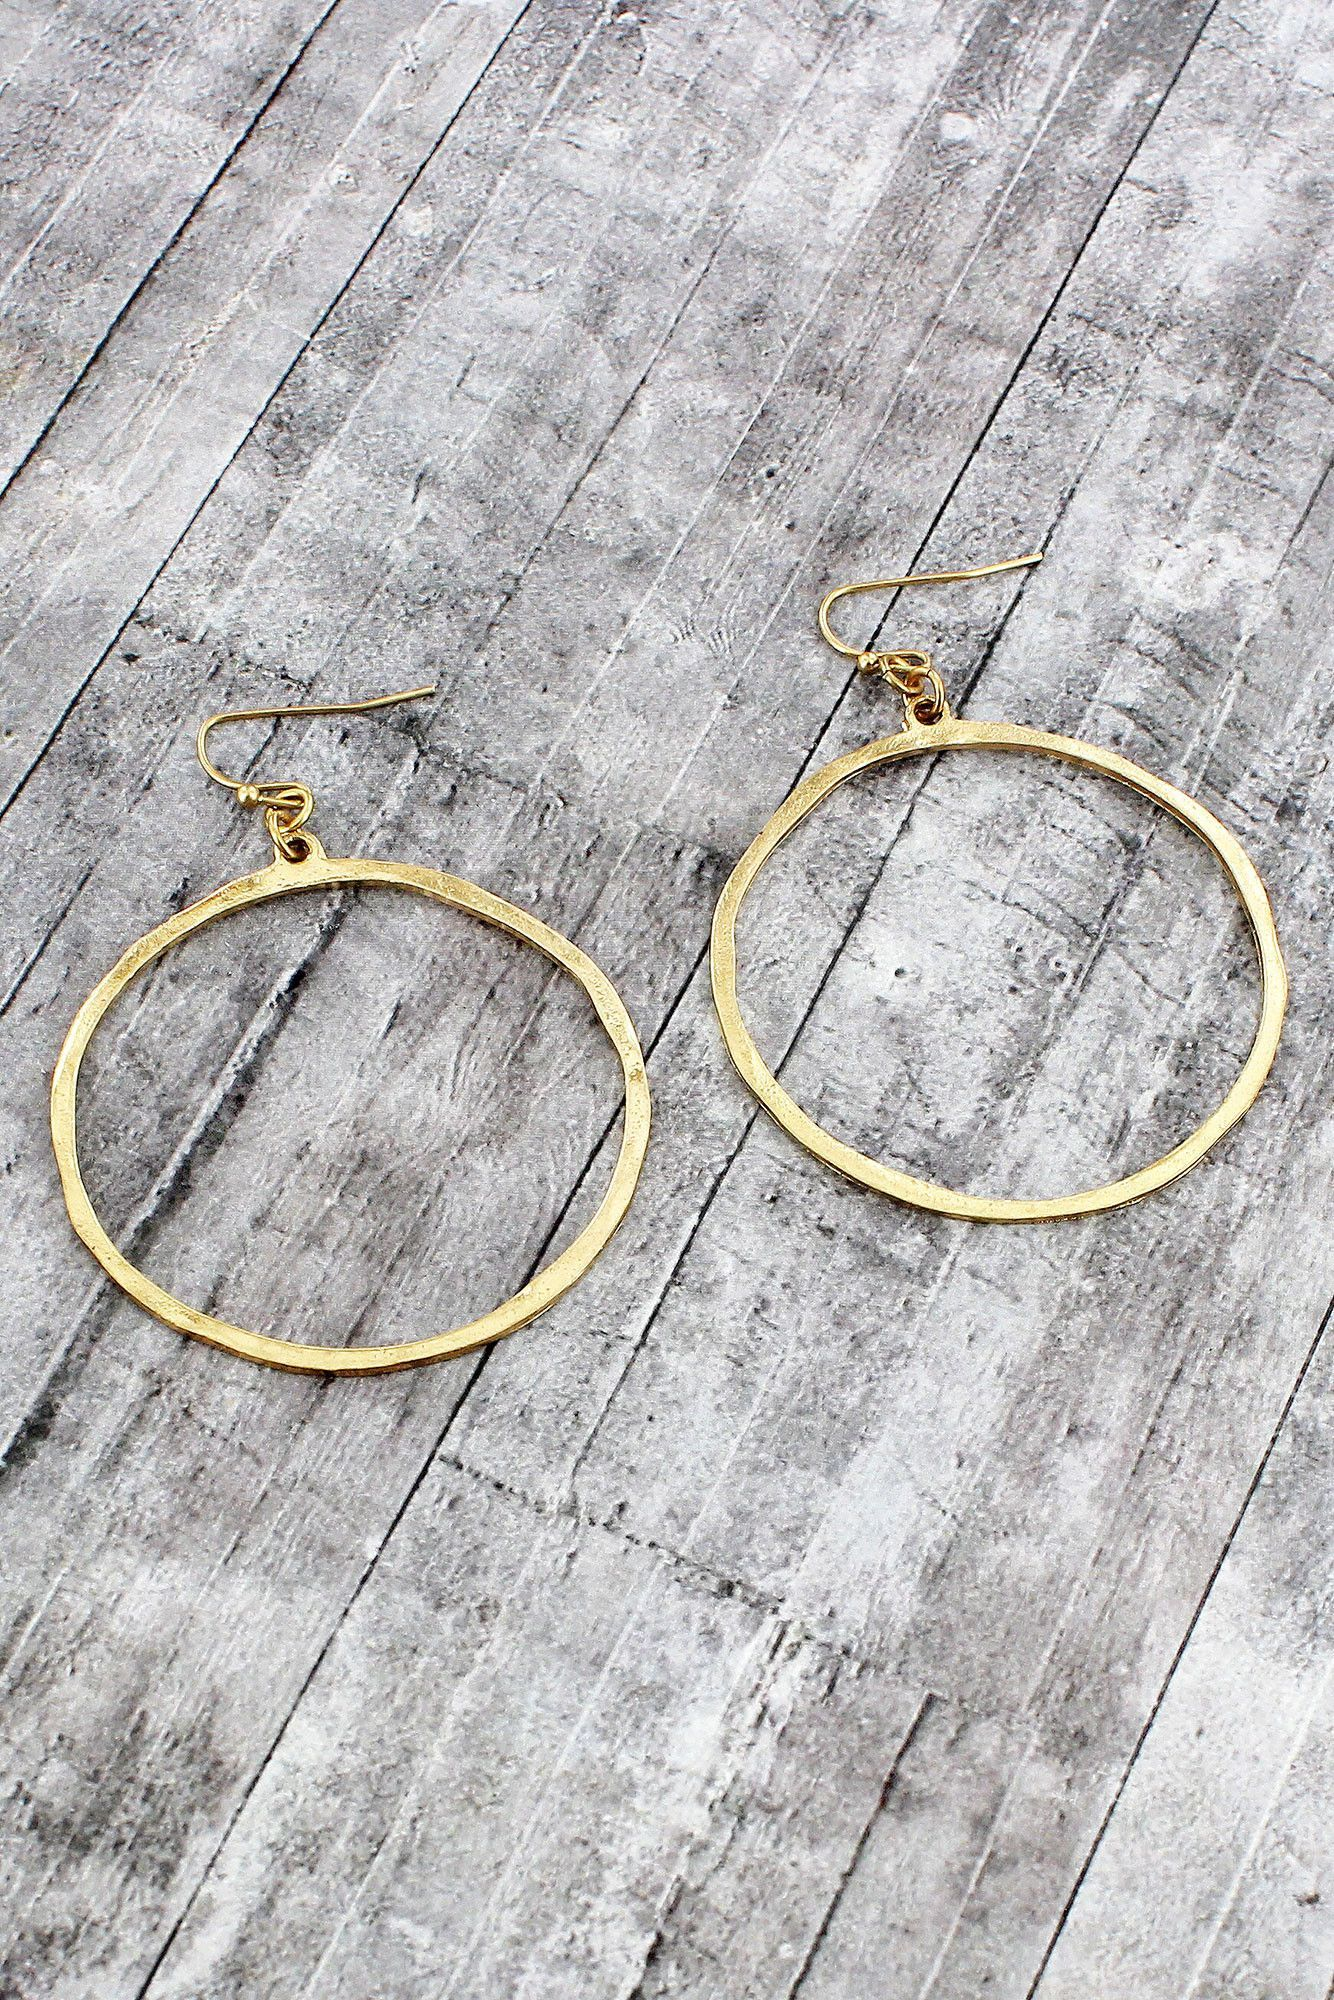 Make A Statement With These Stylish Hoop Earrings!worn Goldtone Hammered  Texture Fish Hook Style With Drop